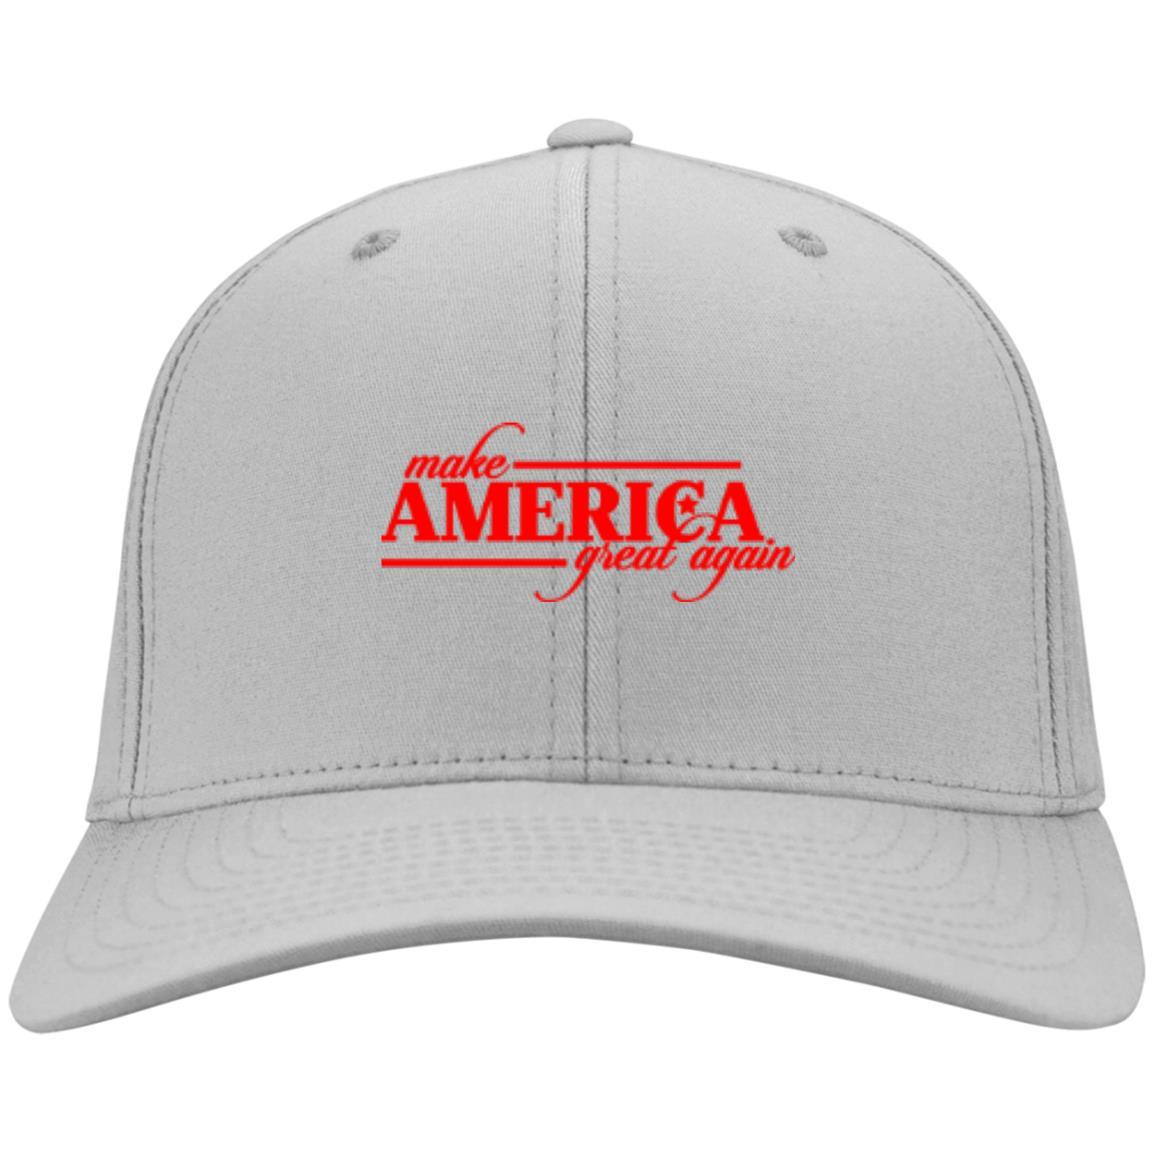 Make America Great Again - Port & Co. Twill Cap Silver